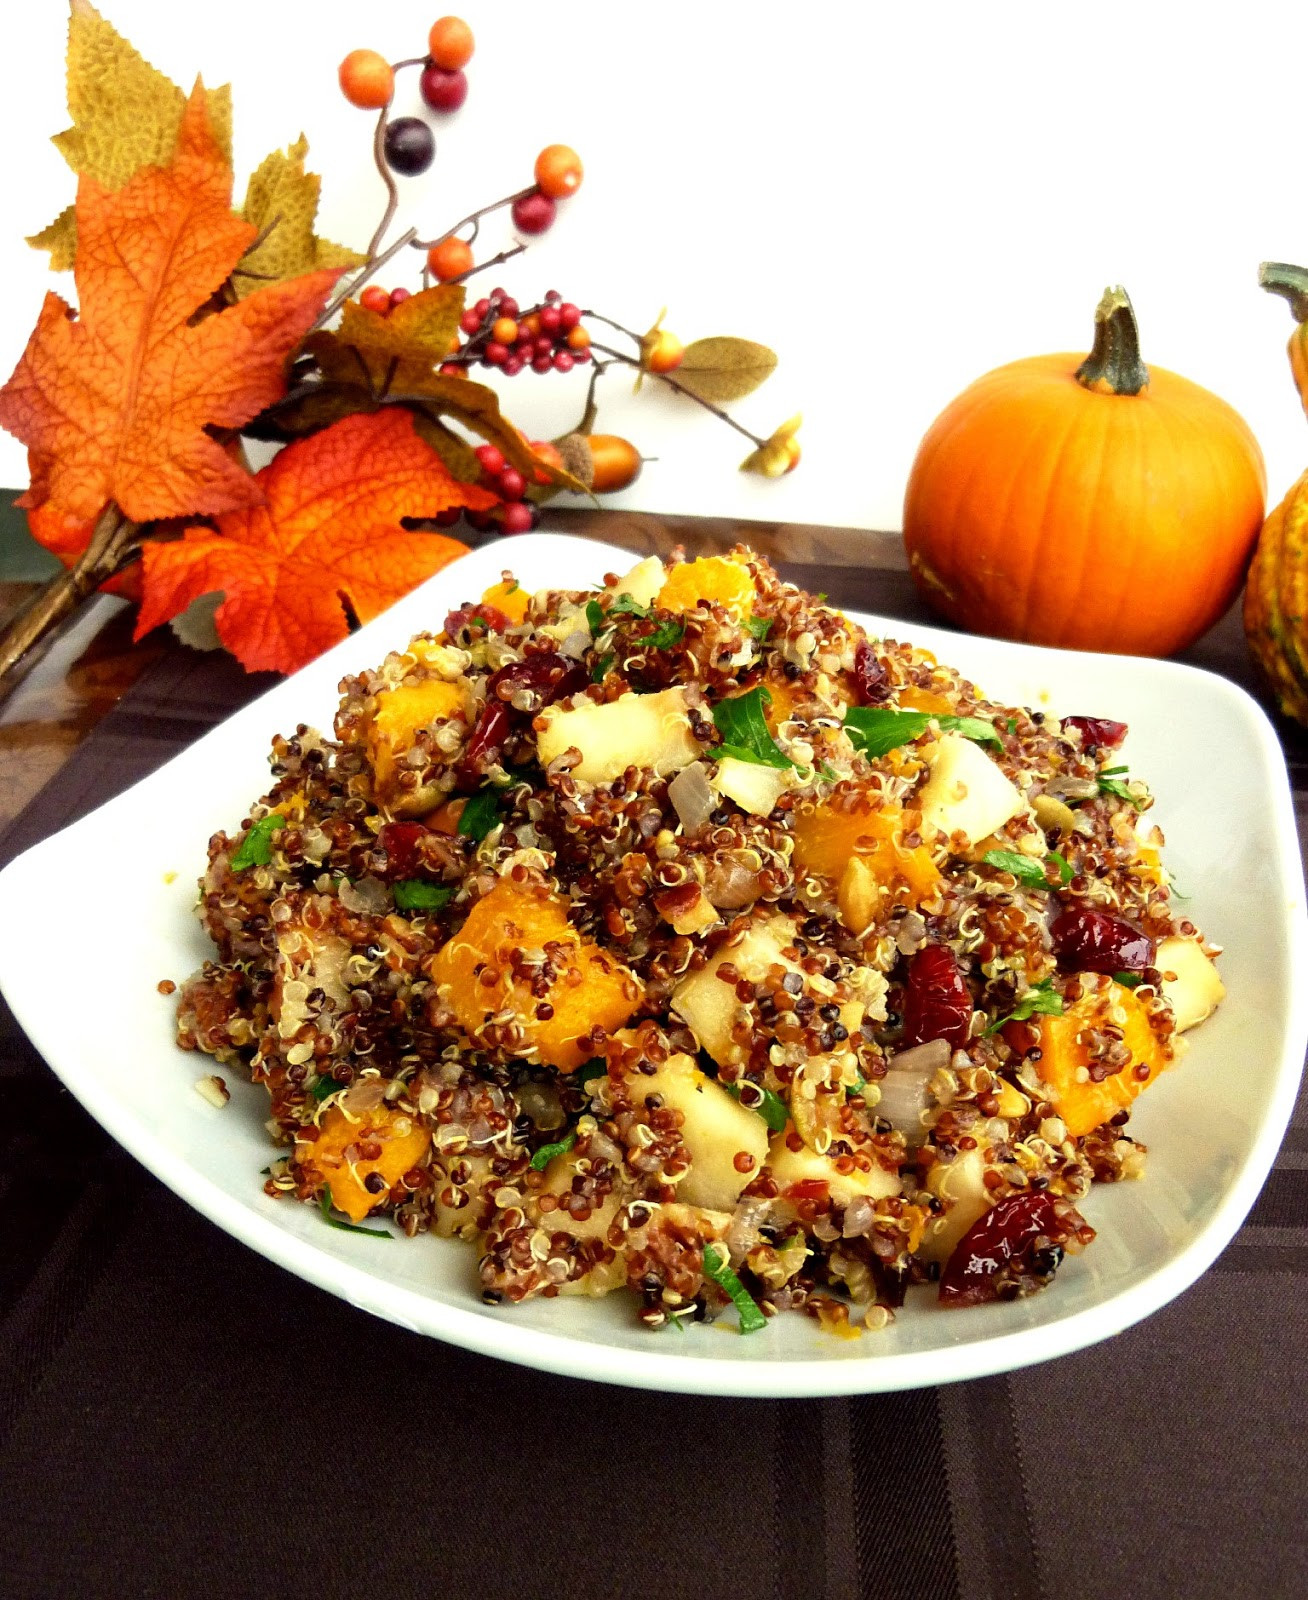 Vegetarian Thanksgiving Dish  Vanilla & Spice Recipes for a Ve arian Thanksgiving